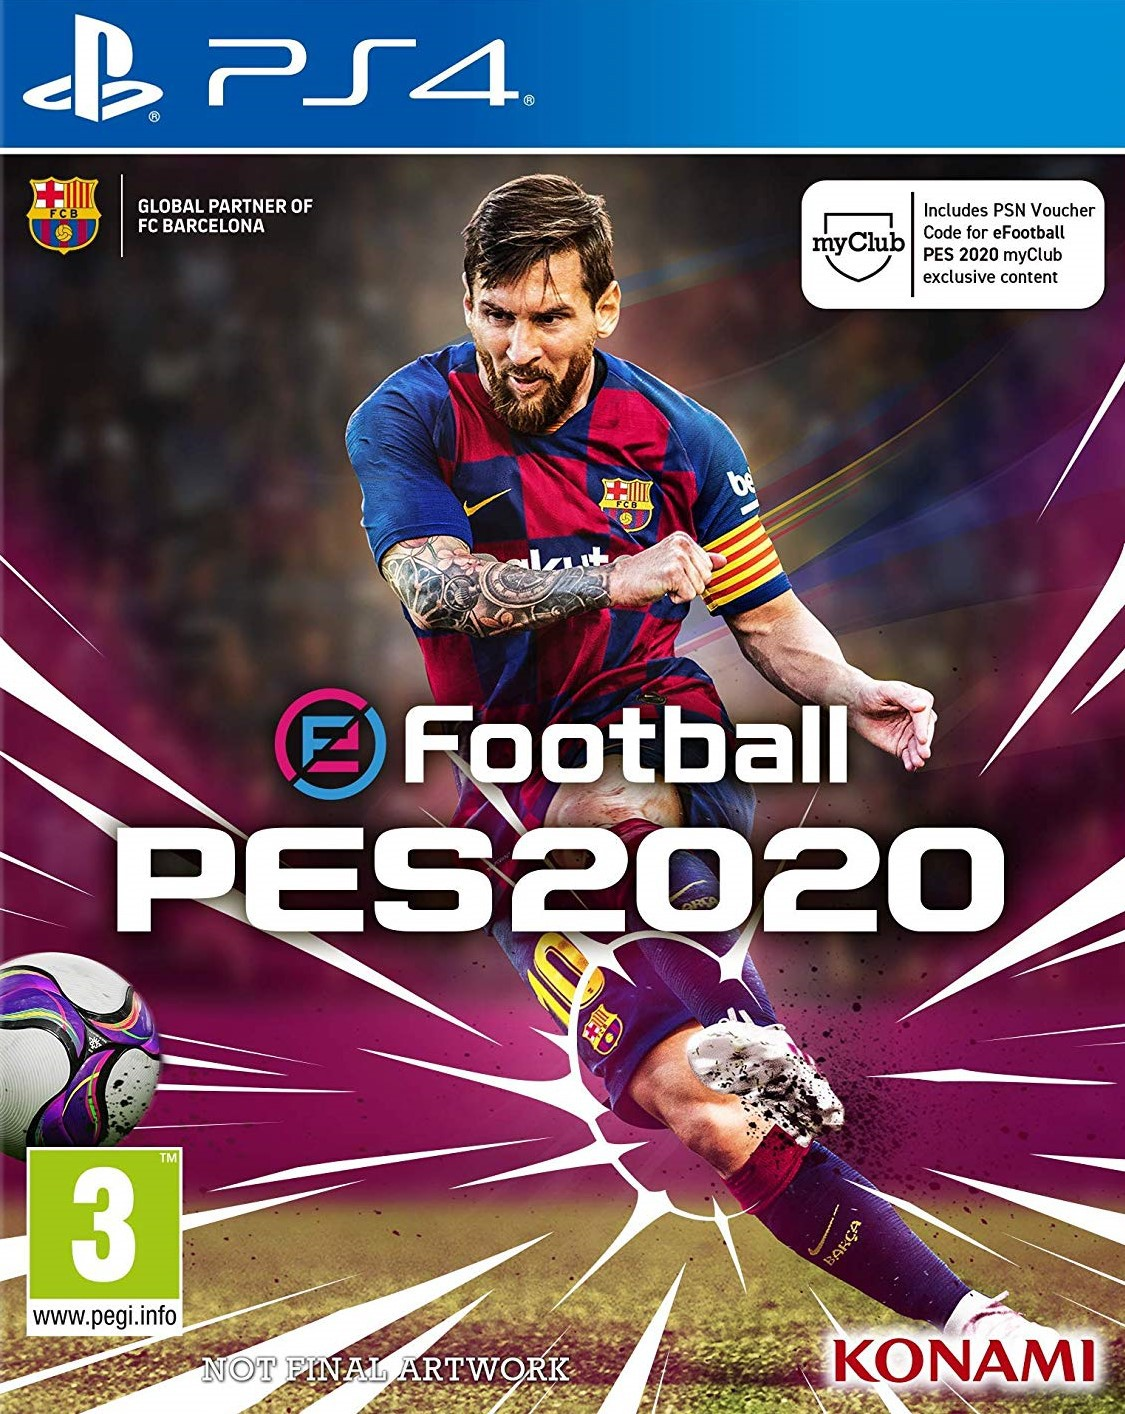 Ps4 Games Coming Out In 2020.Efootball Pro Evolution Soccer 2020